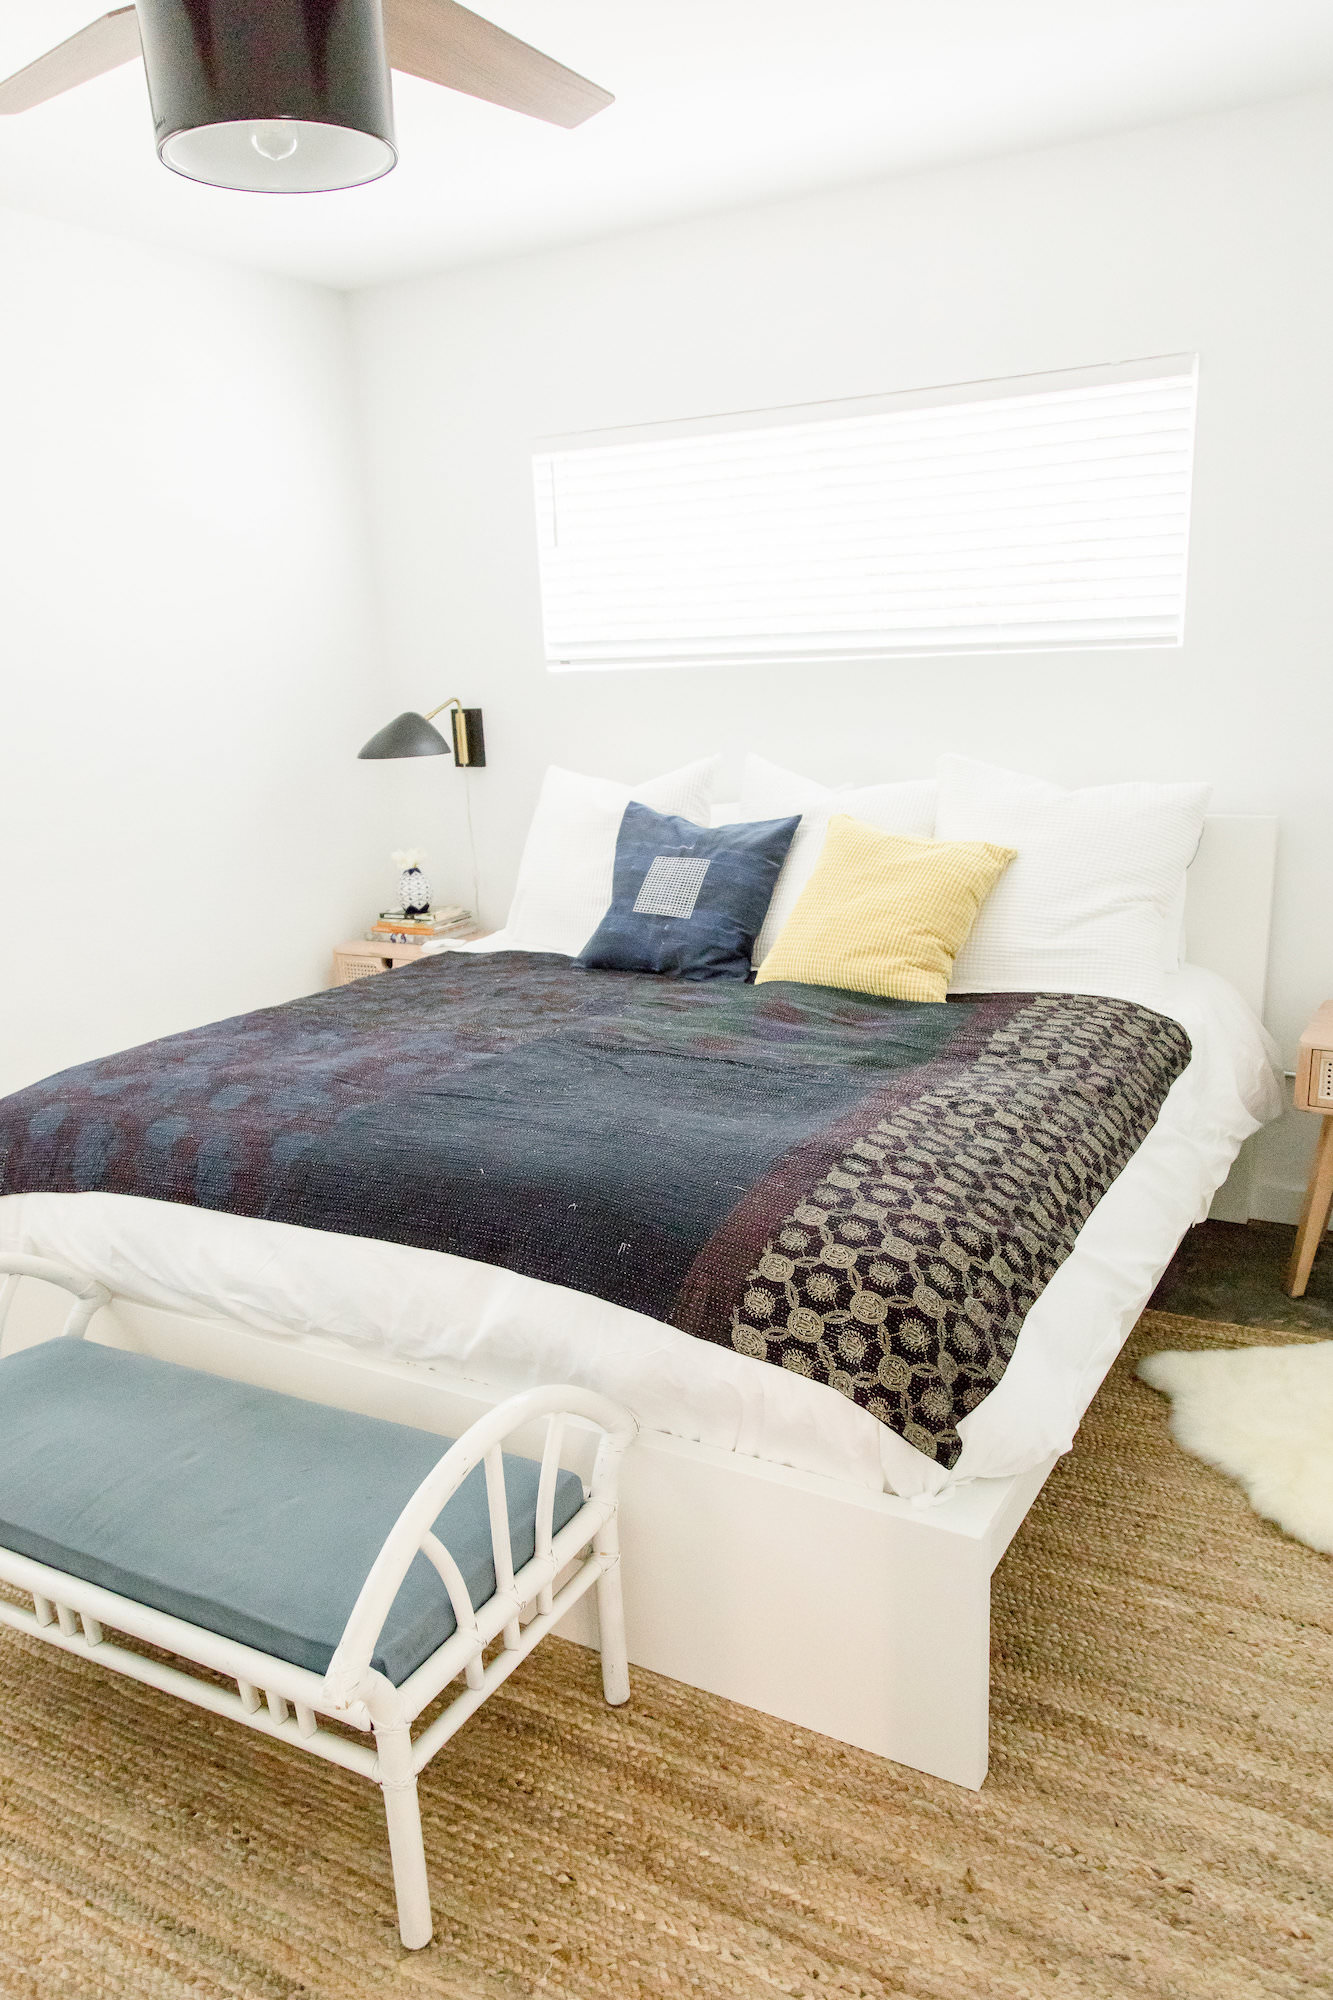 mid-century-modern-vacation-rental-white-bedroom-blue-comforter-web-res.jpg